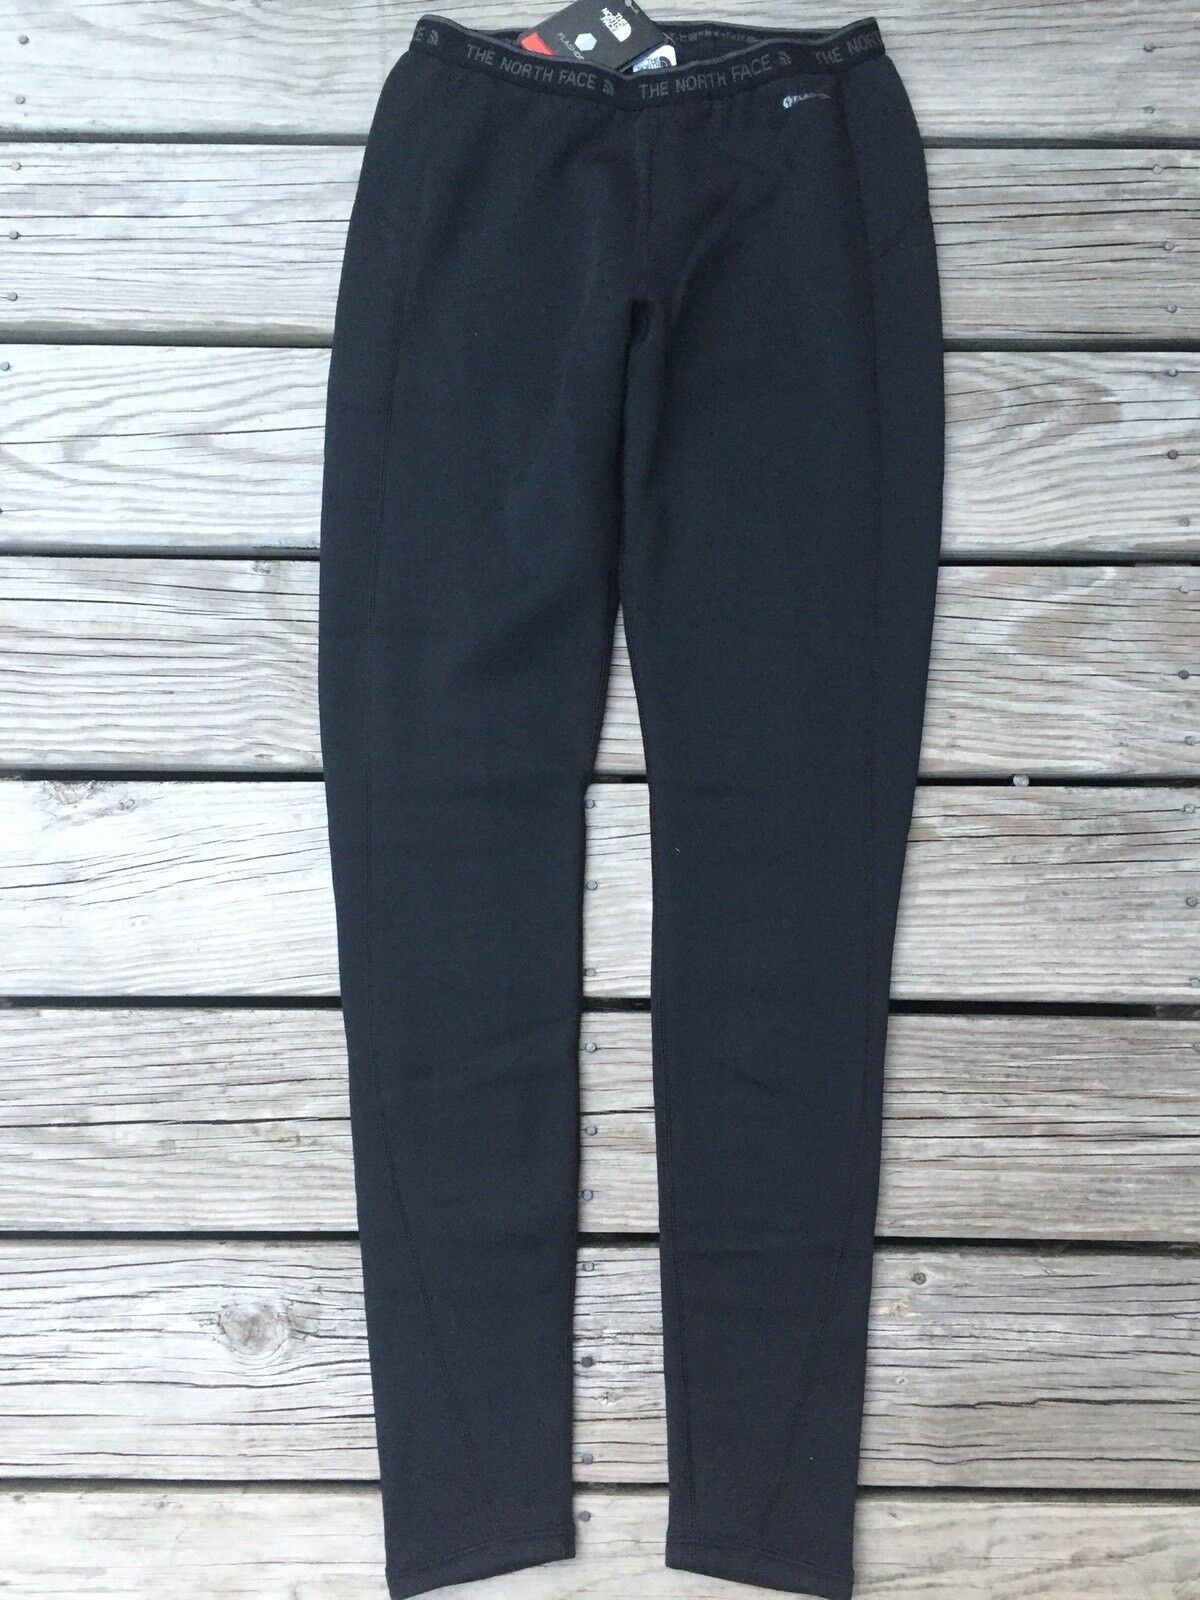 70 THE NORTH FACE EXPEDITION RUNNING TIGHT PANTS LEGGINGS WOMENS M SKI WINTER